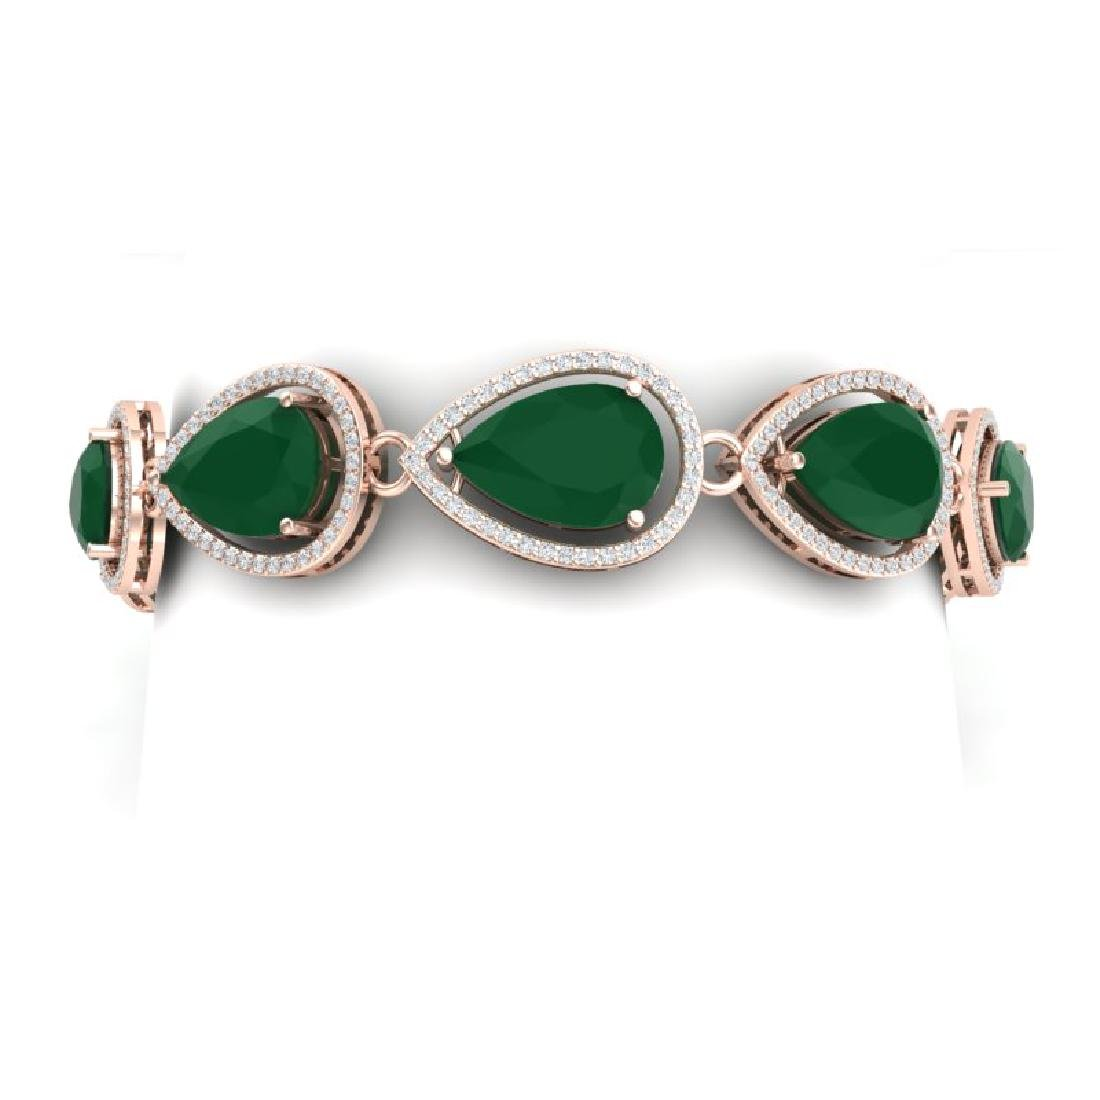 28.31 CTW Royalty Emerald & VS Diamond Bracelet 18K